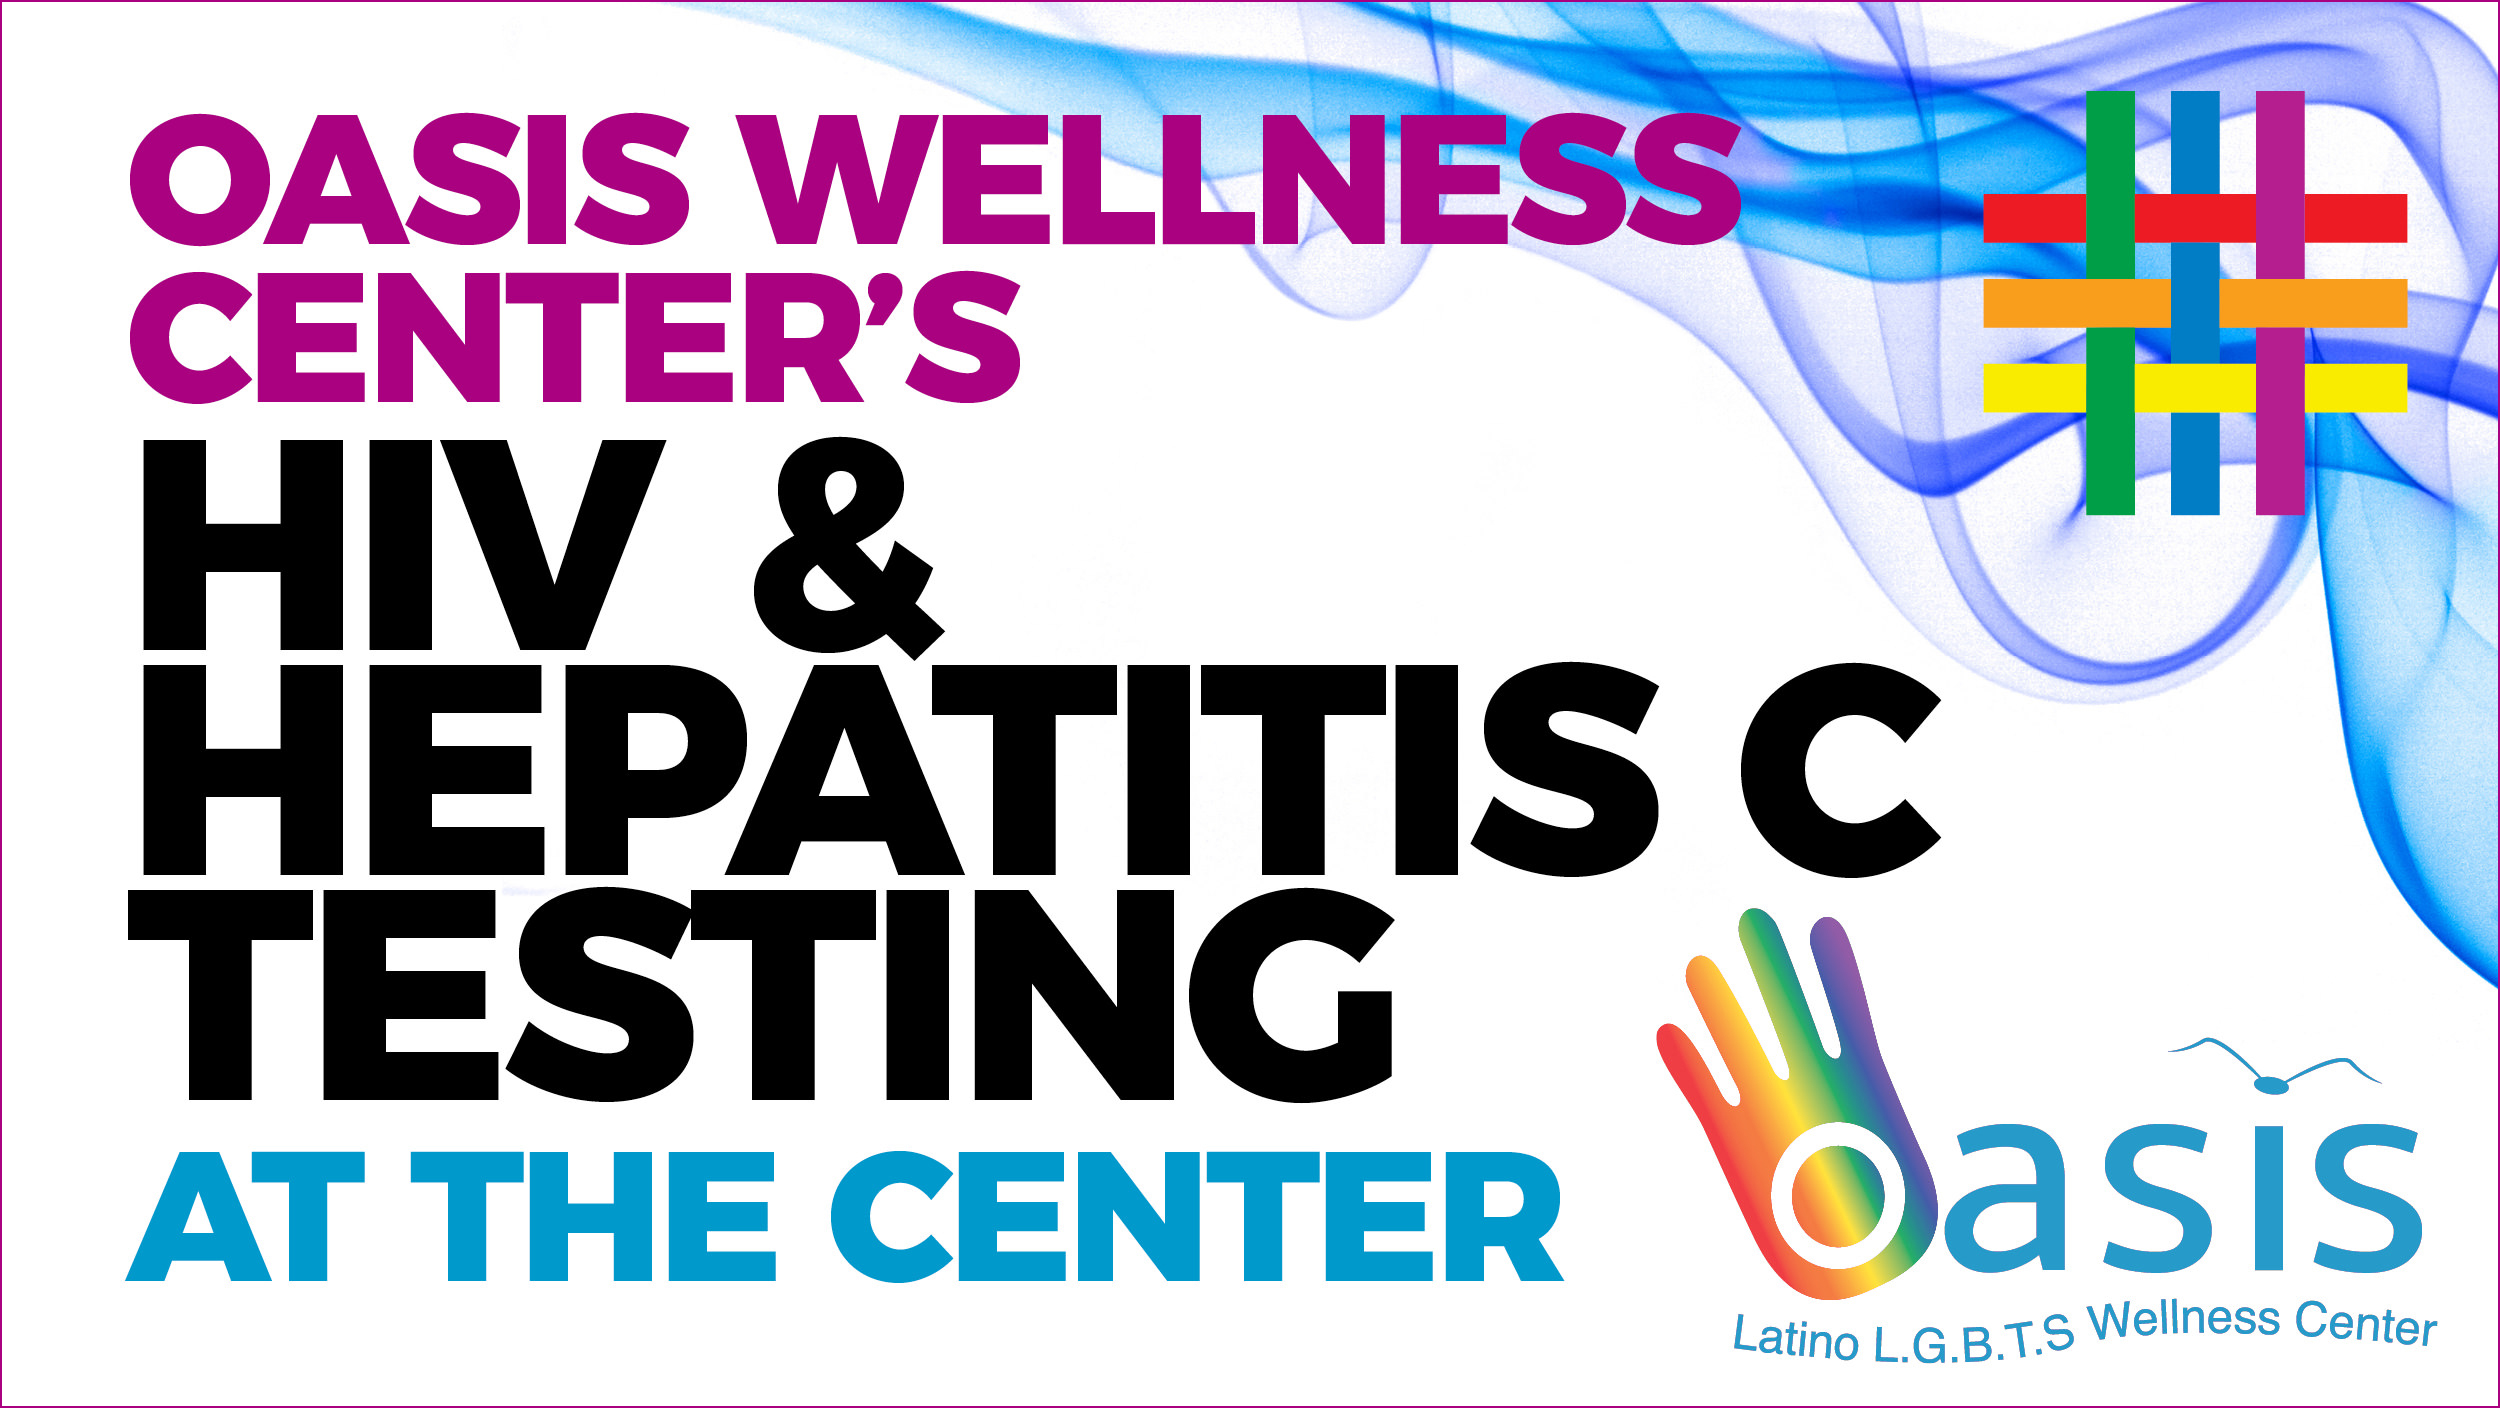 Oasis Latino LGBTS Wellness Center at Brooklyn Community Pride Center